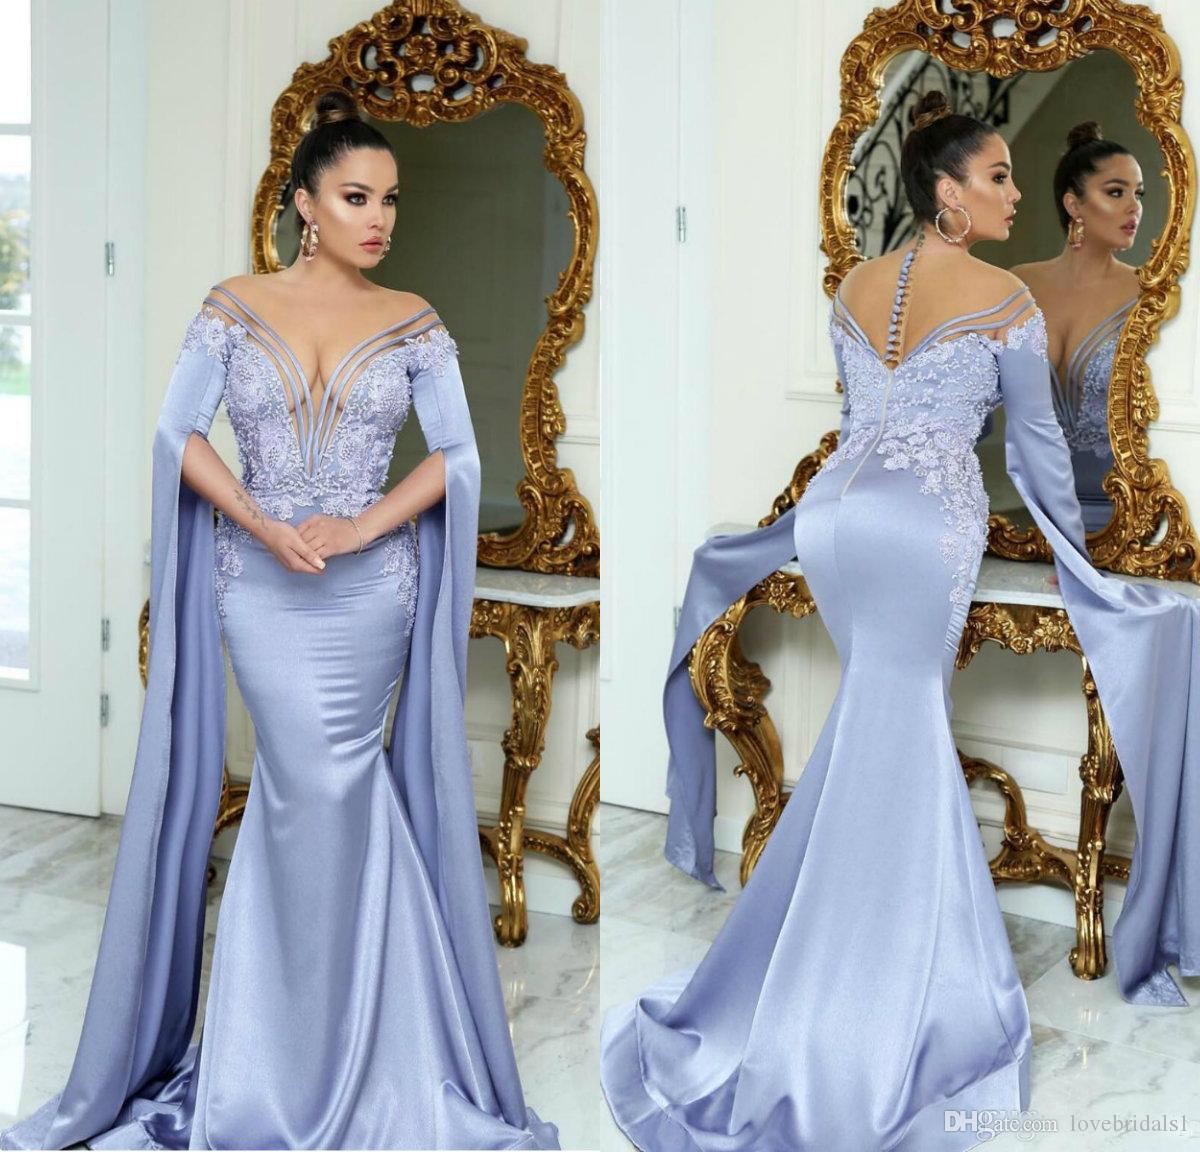 8142d3f42c 2019 Lavender Mermaid Dubai Evening Dresses With Poet Long Sleeve Muslim  Arabic Style Applique Elegant Prom Dress Vestido Longo Simple Evening  Dresses Uk ...